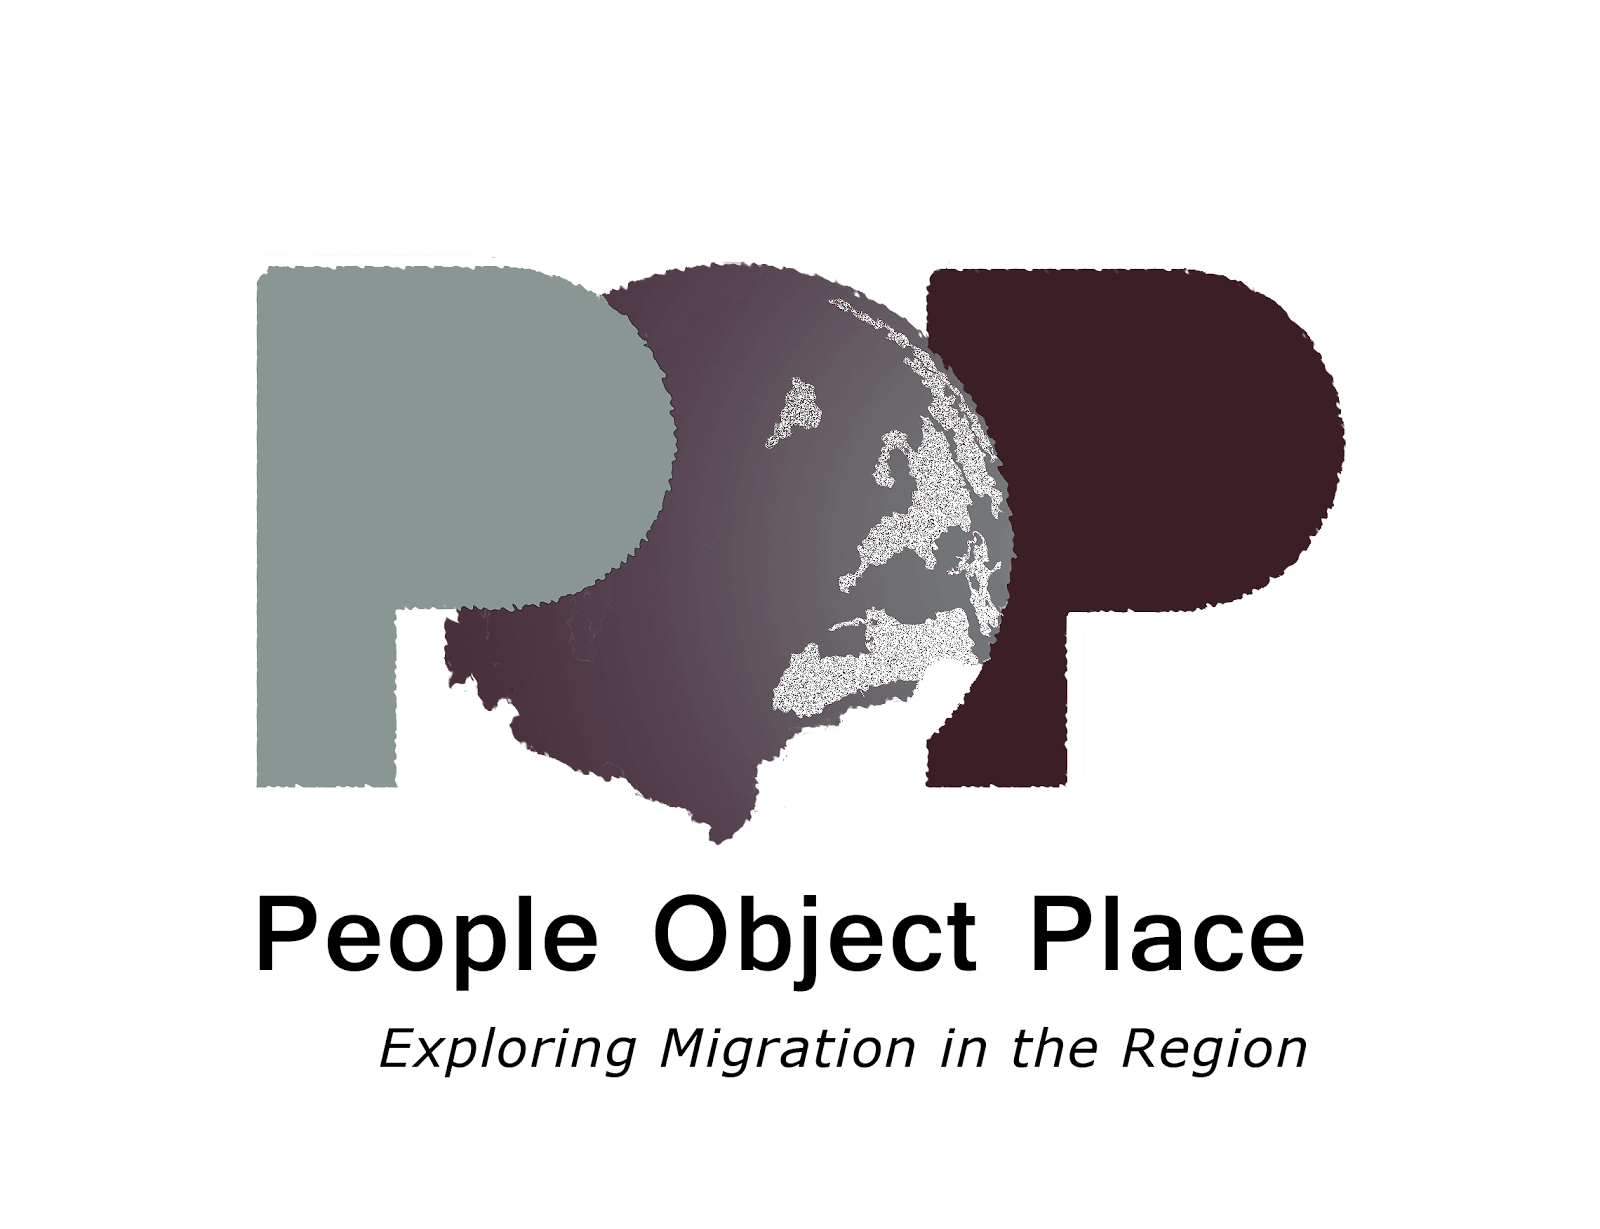 People Object Place